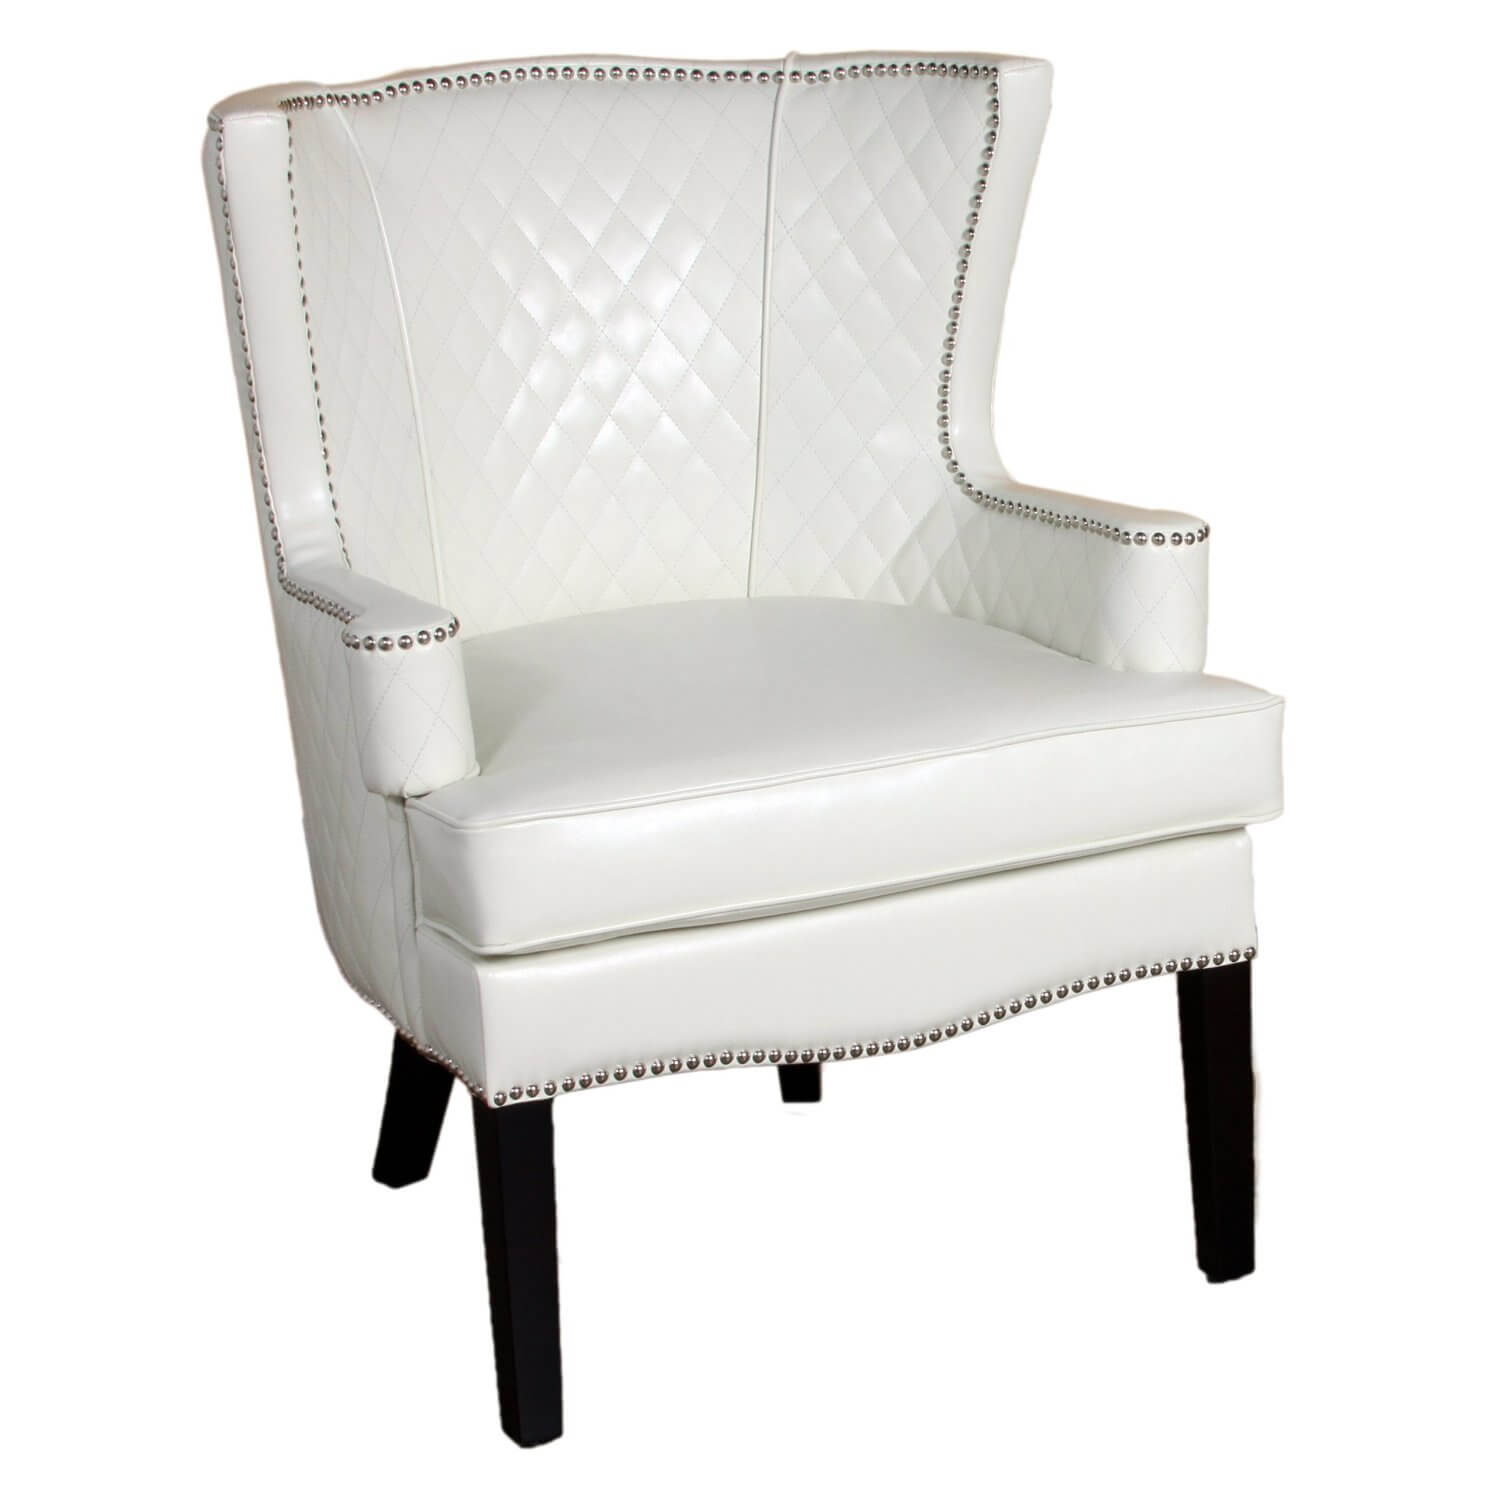 Most Comfortable Accent Chairs 37 White Modern Accent Chairs For The Living Room